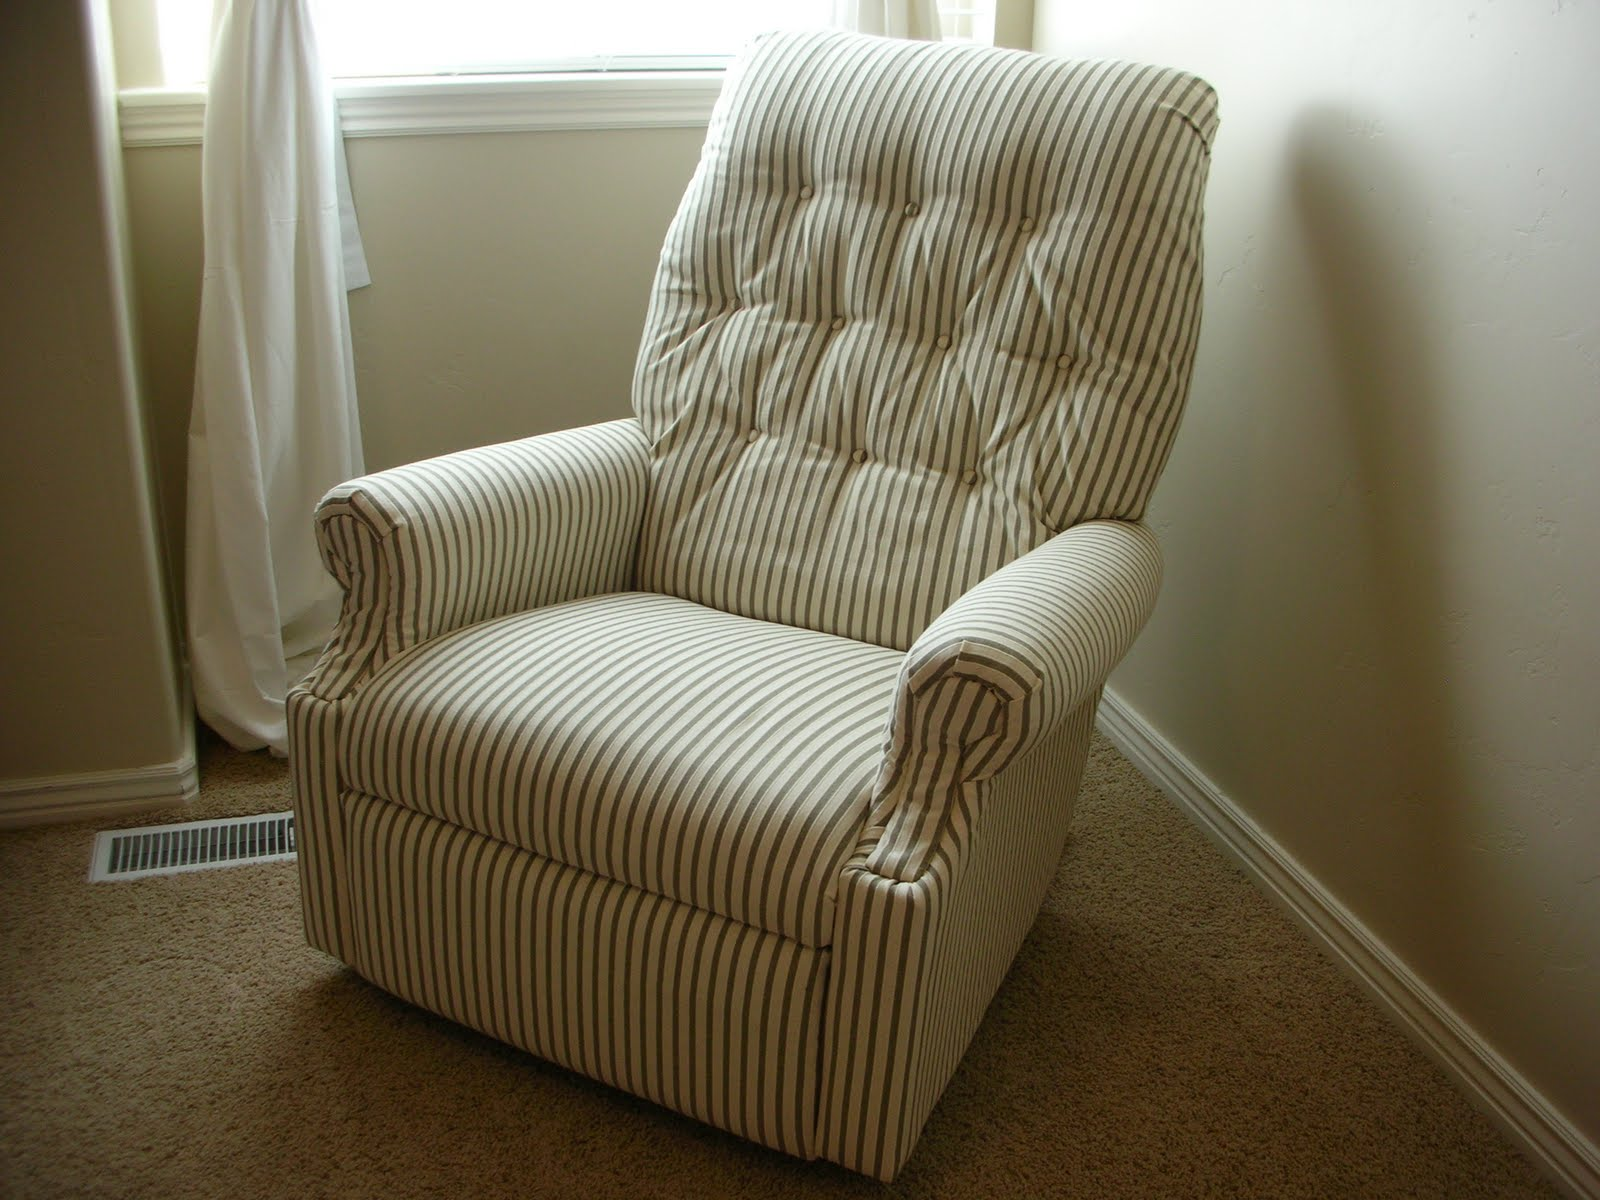 DIY Reupholster An Old La-Z-Boy Recliner : lazy boy wingback chairs - Cheerinfomania.Com